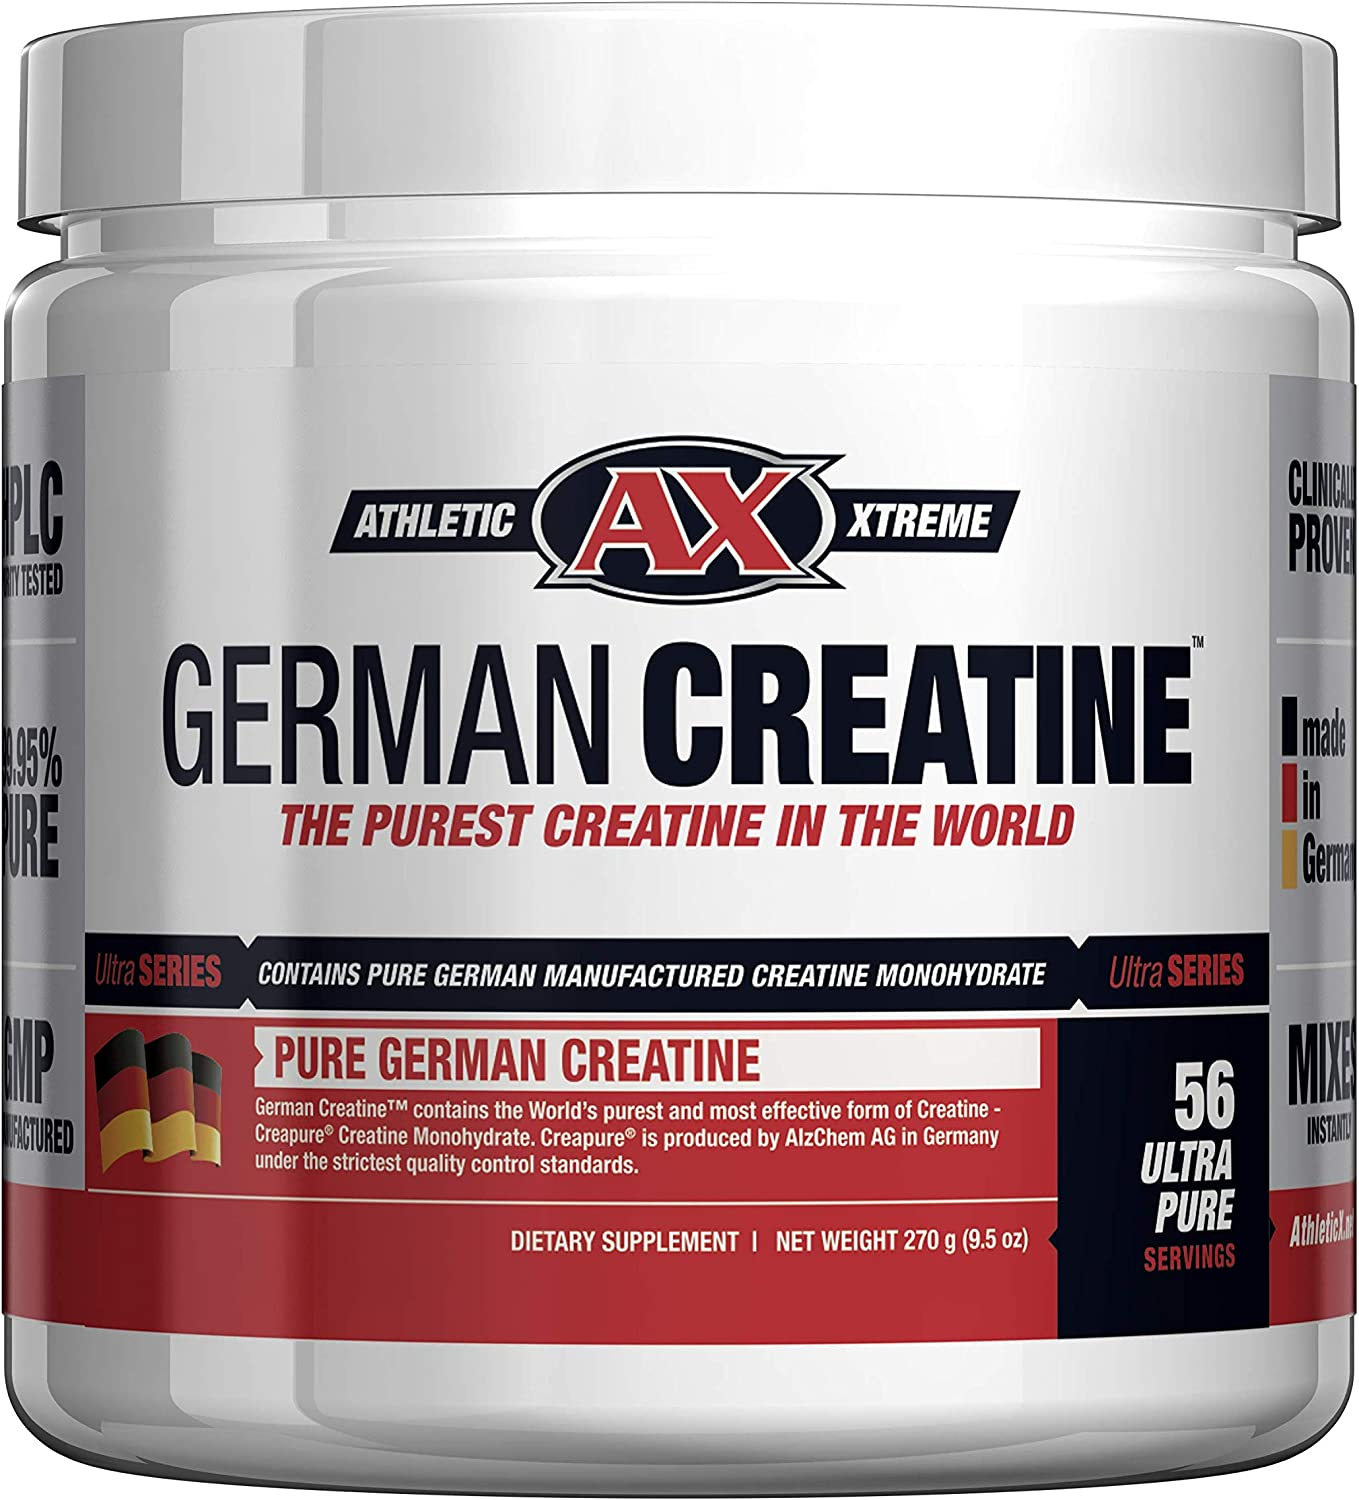 German Creatine (Pure Creapure, The Purest Creatine Monohydrate Available) - 270g (56 Servings) | Micronized Creatine from Germany not Chinese Contaminated Junk